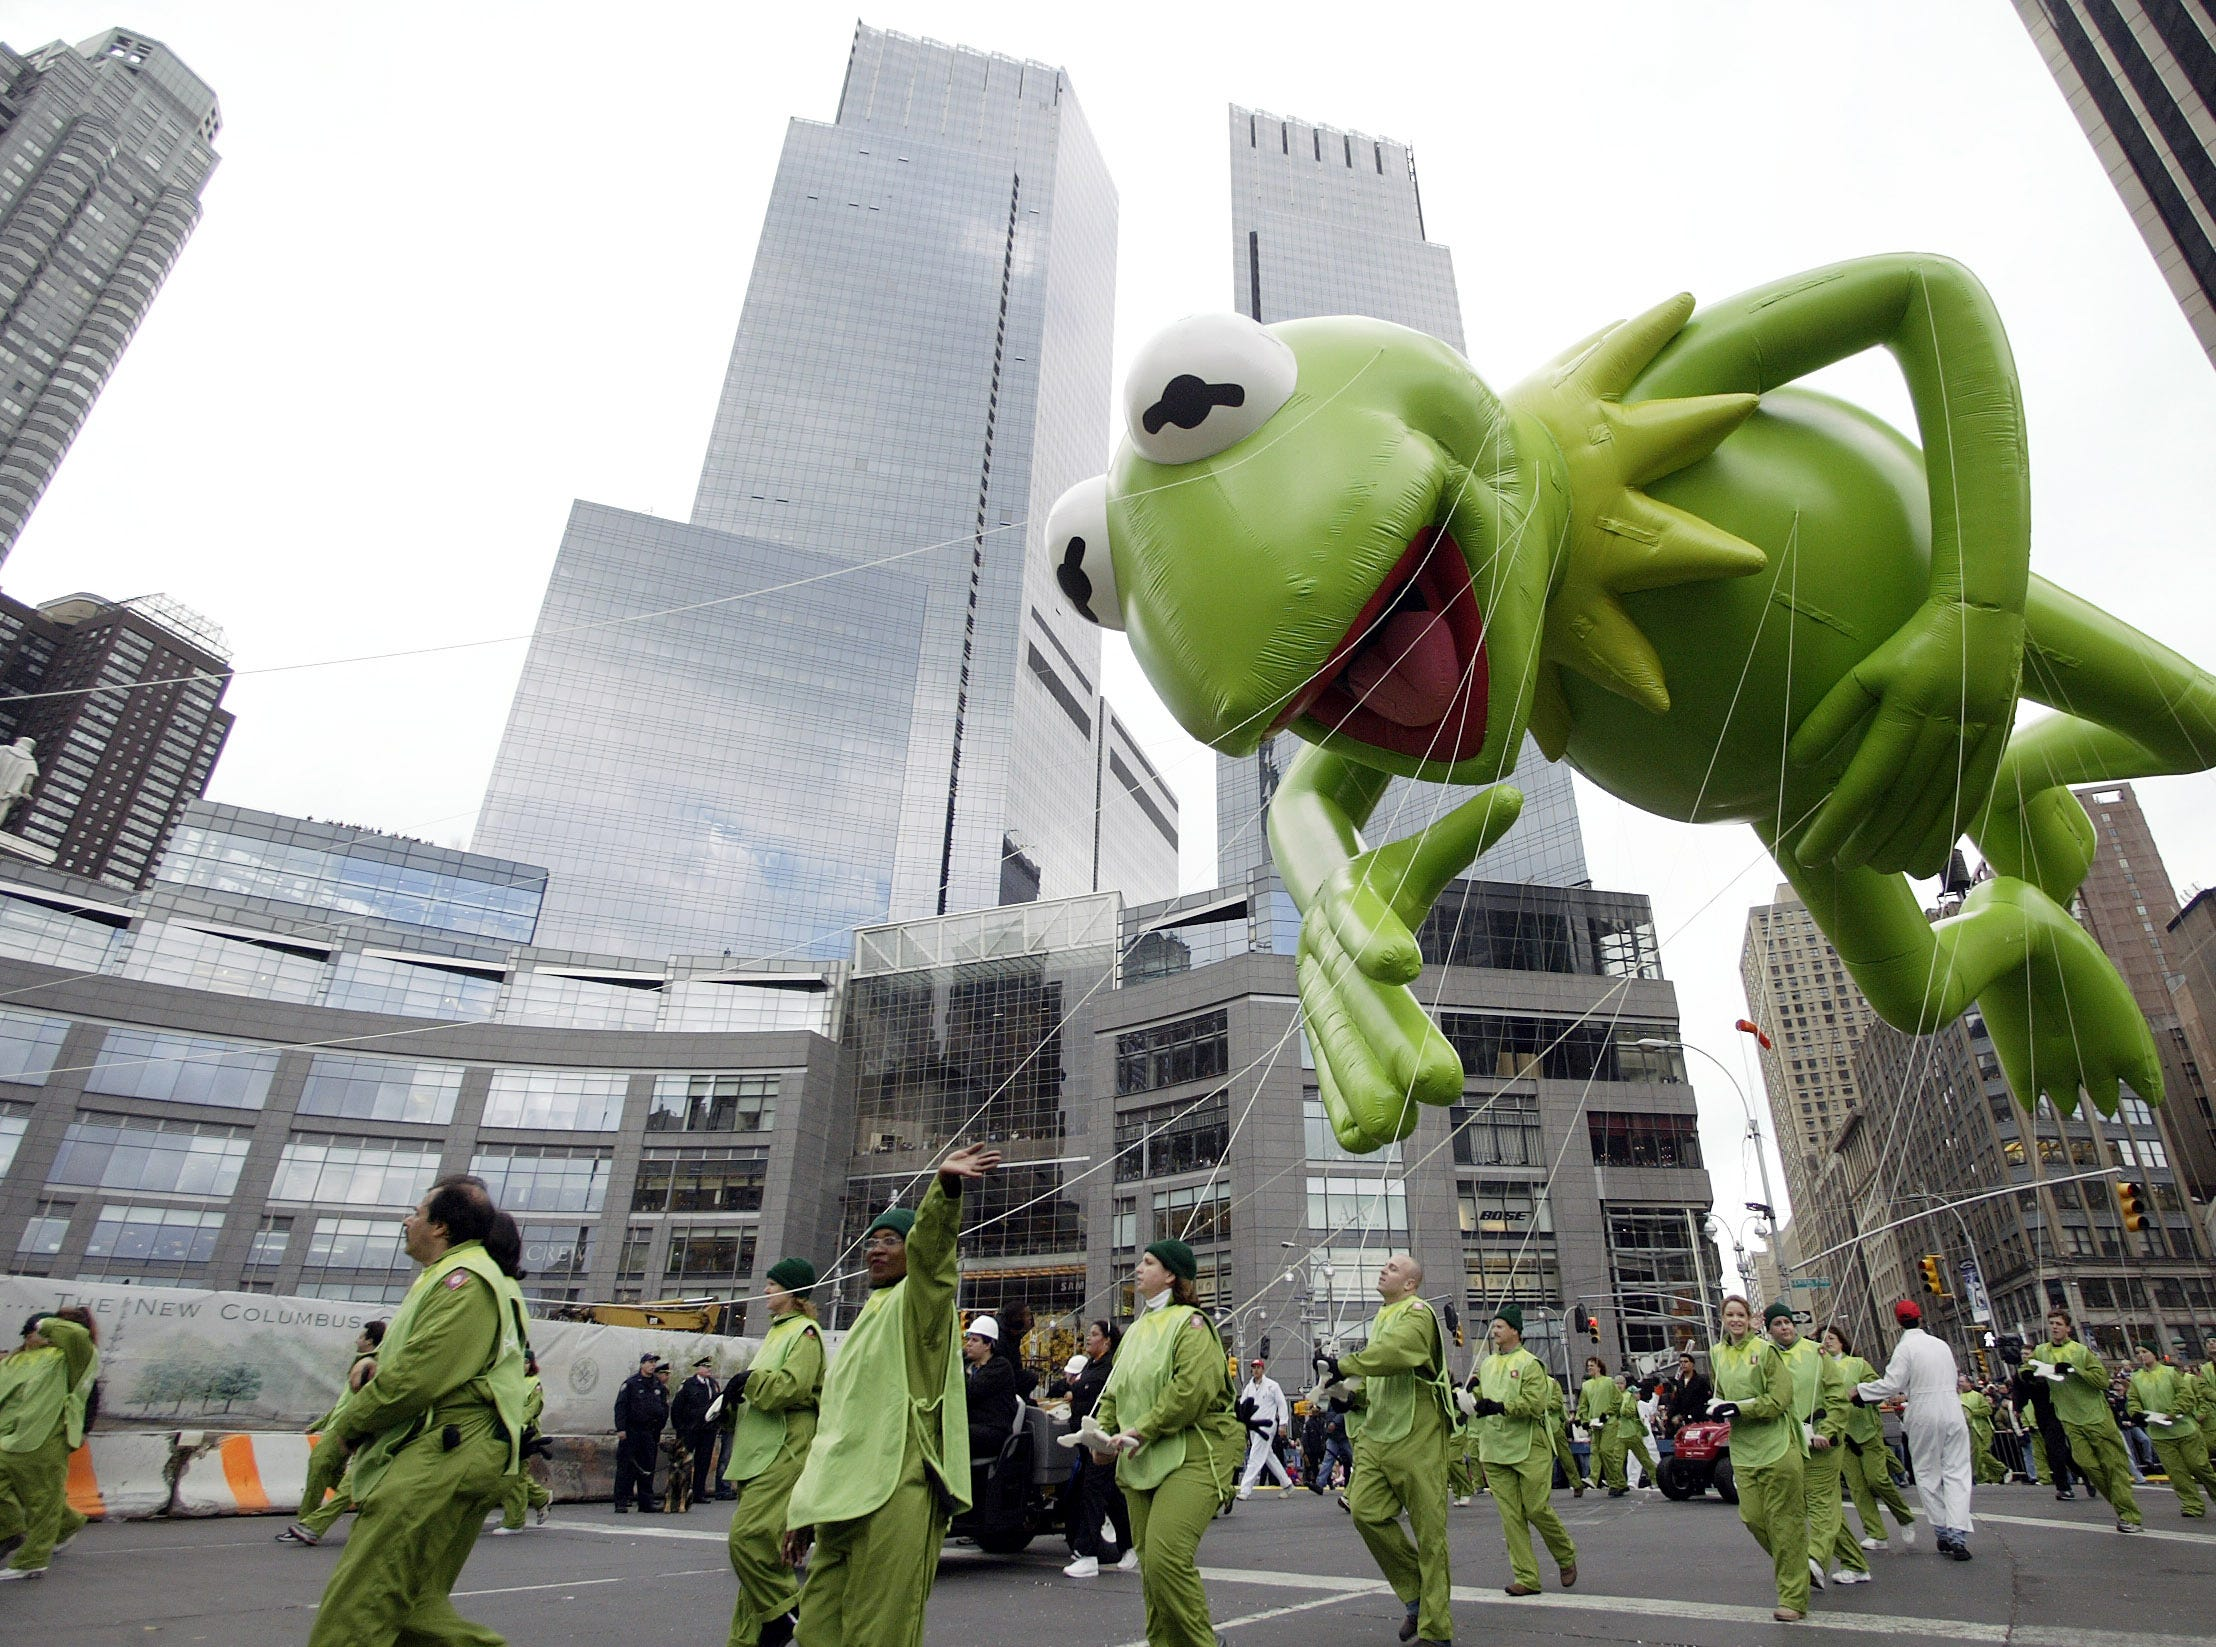 Kermit the Frog floats above the newly renovated Columbus Circle during the Macy's Parade in New York, Thursday, Nov. 25, 2004. The Thanksgiving Day parade, featuring 59 balloons and 27 floats, stepped off just after 9 a.m. and began its procession toward Herald Square in Manhattan. (AP Photo/Gregory Bull)